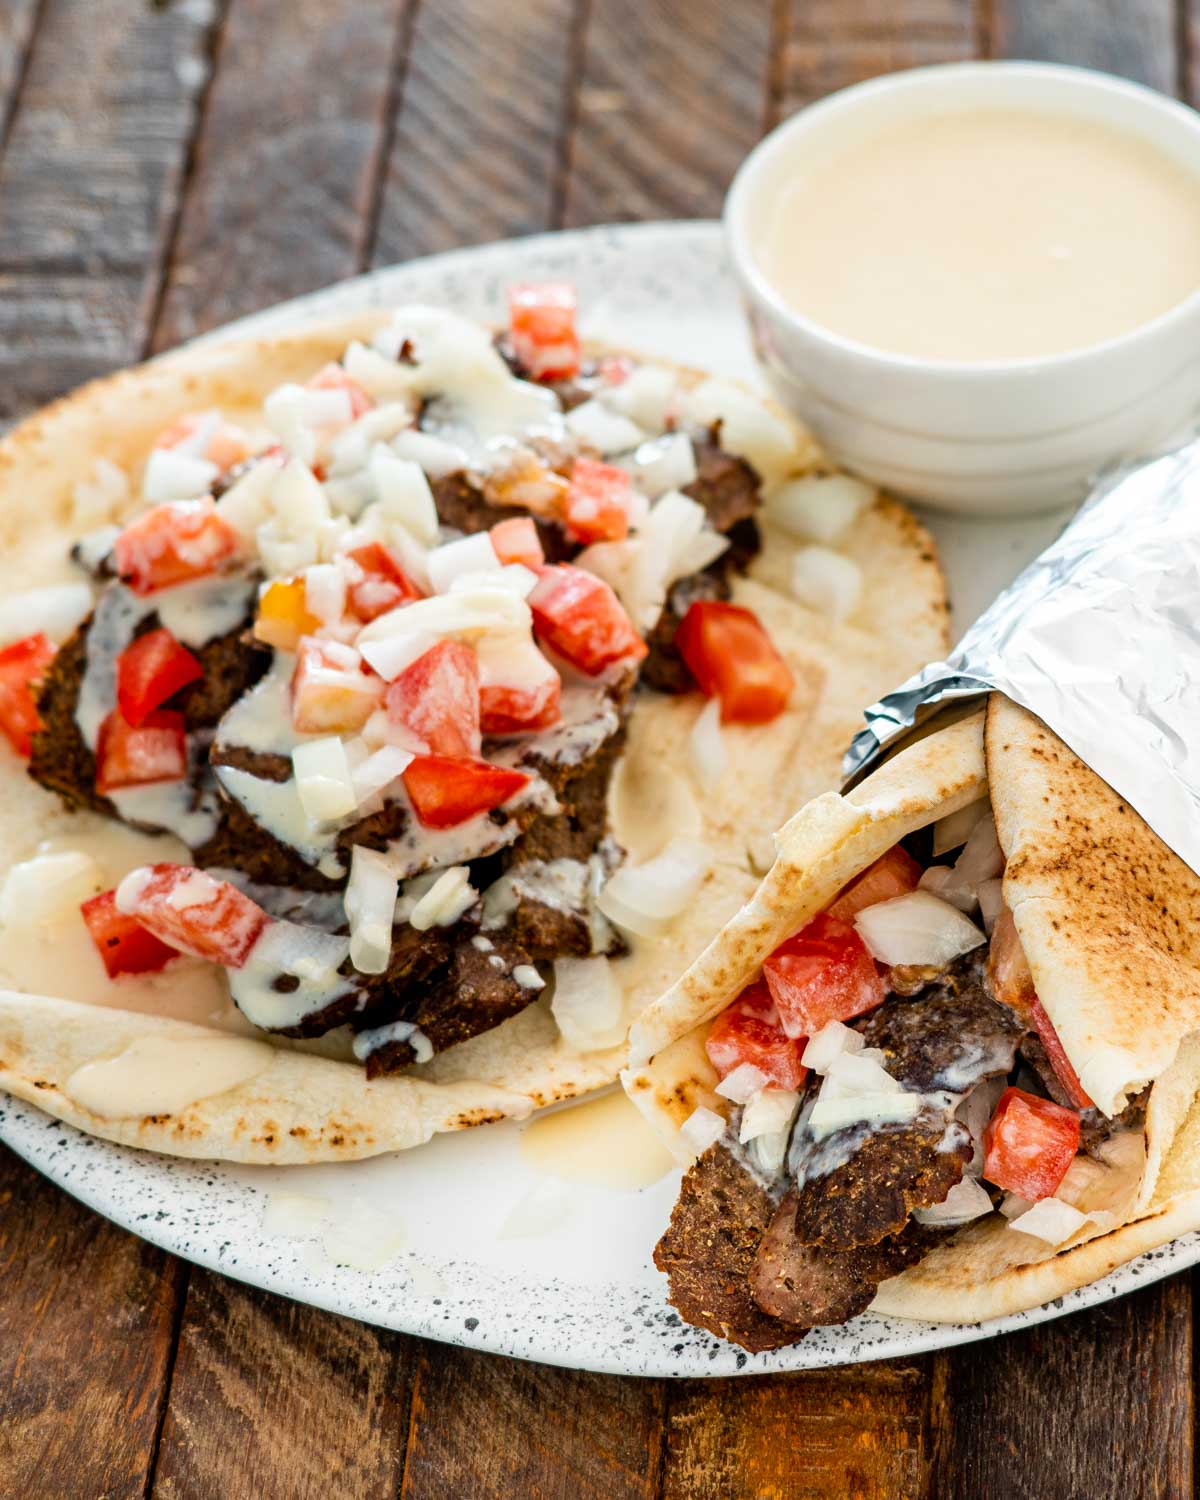 halifax donair on a white plate.